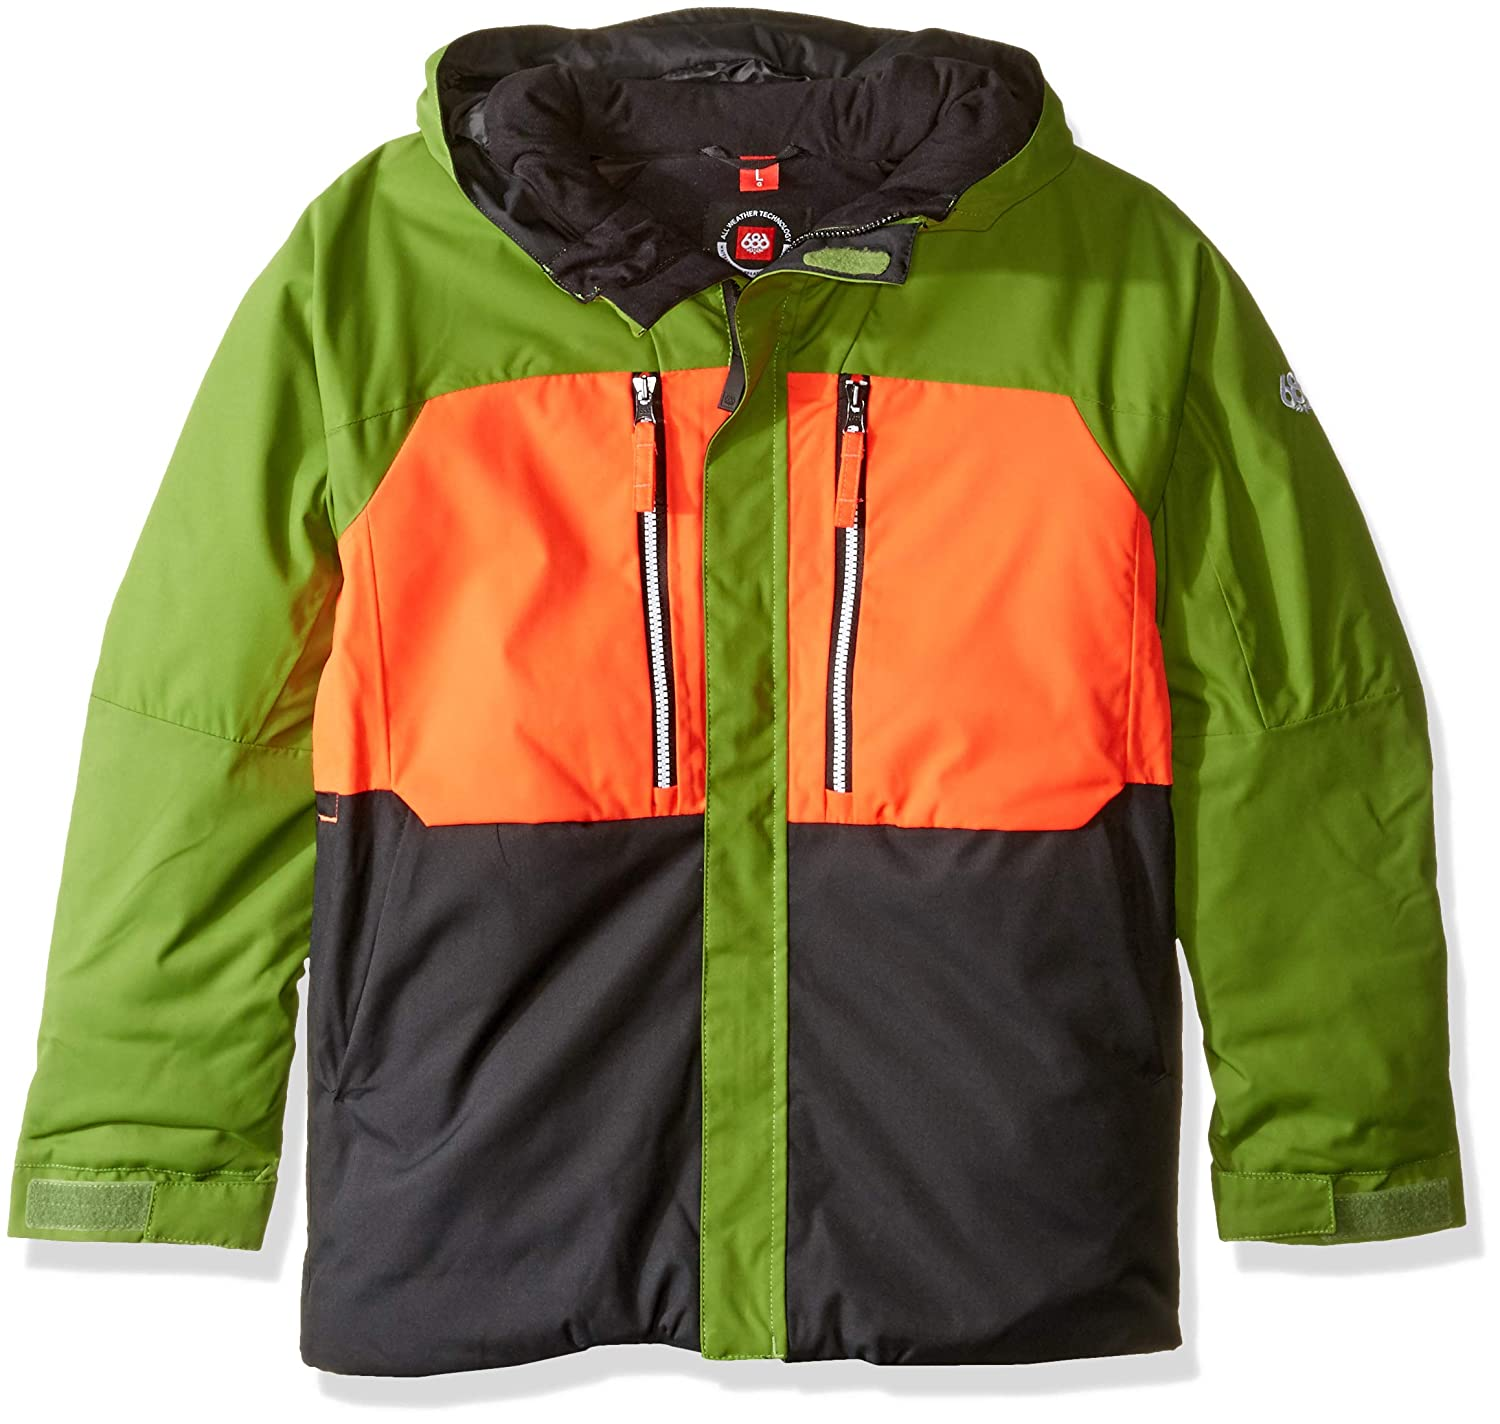 Image of 686 Boys' Ether Termagraph Jackets | Waterproof Ski/Snowboard Jackets